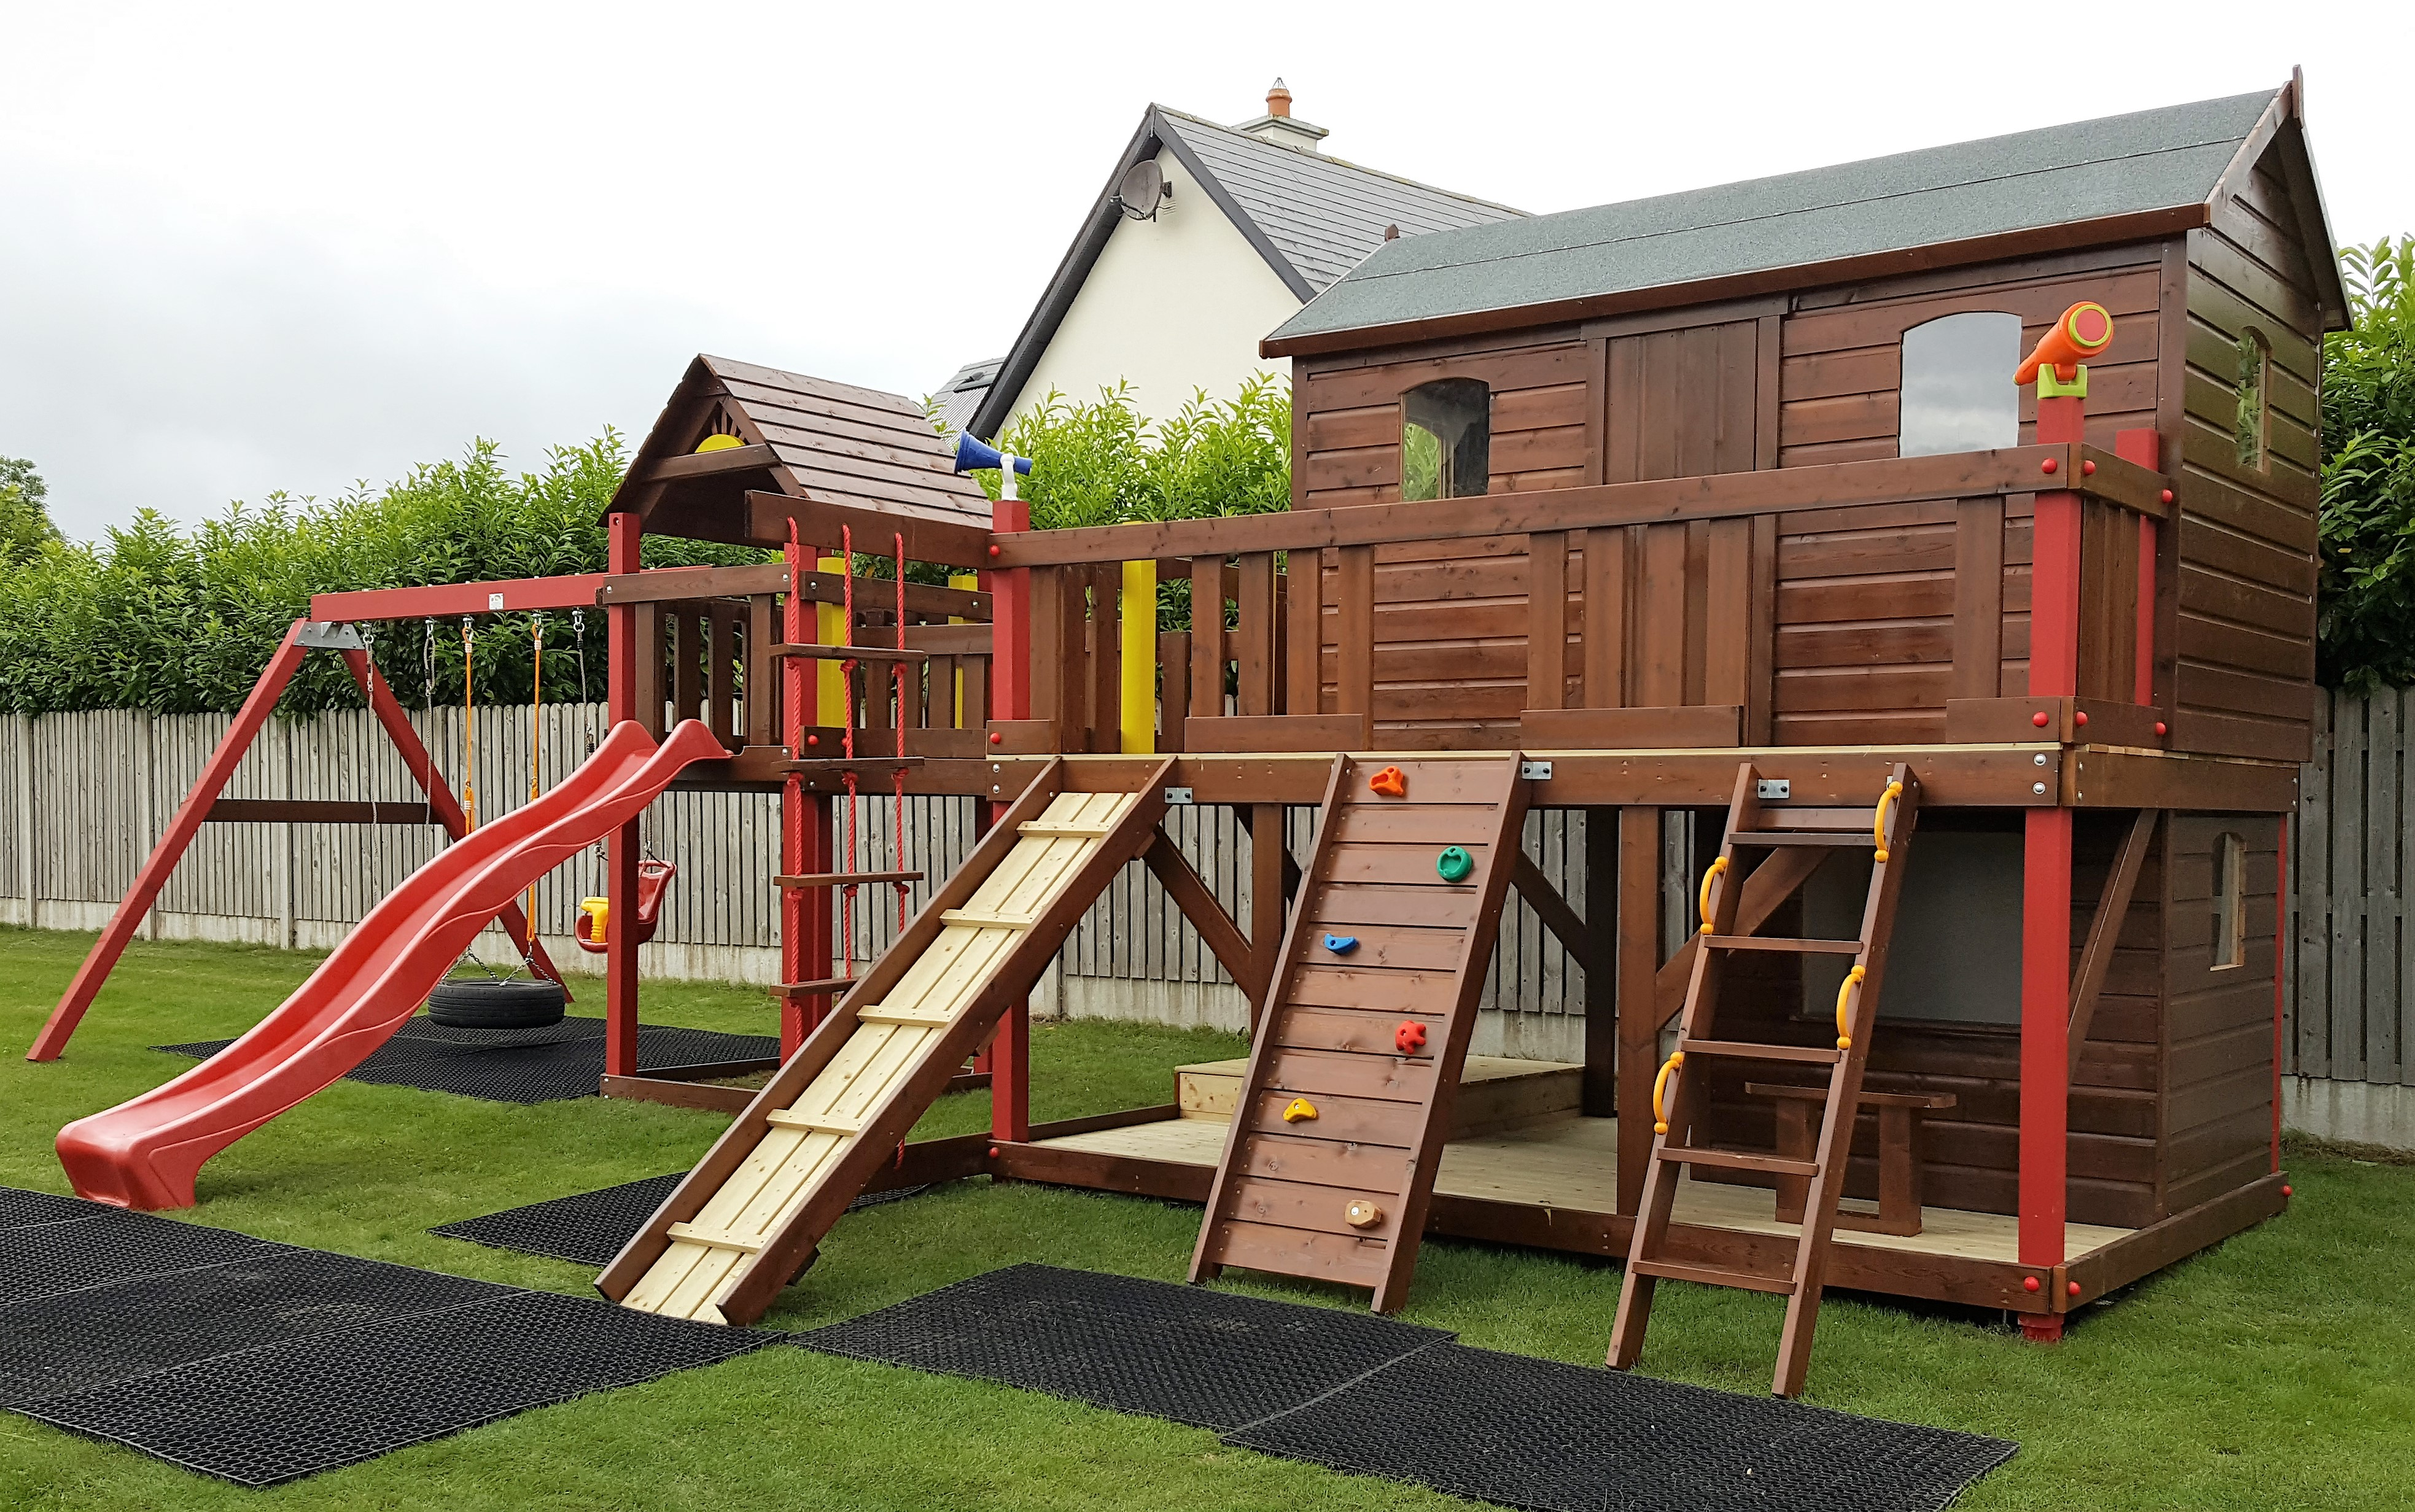 Magnificent Tree House Lilly Sttswings Outdoor Playground Equipment Download Free Architecture Designs Scobabritishbridgeorg